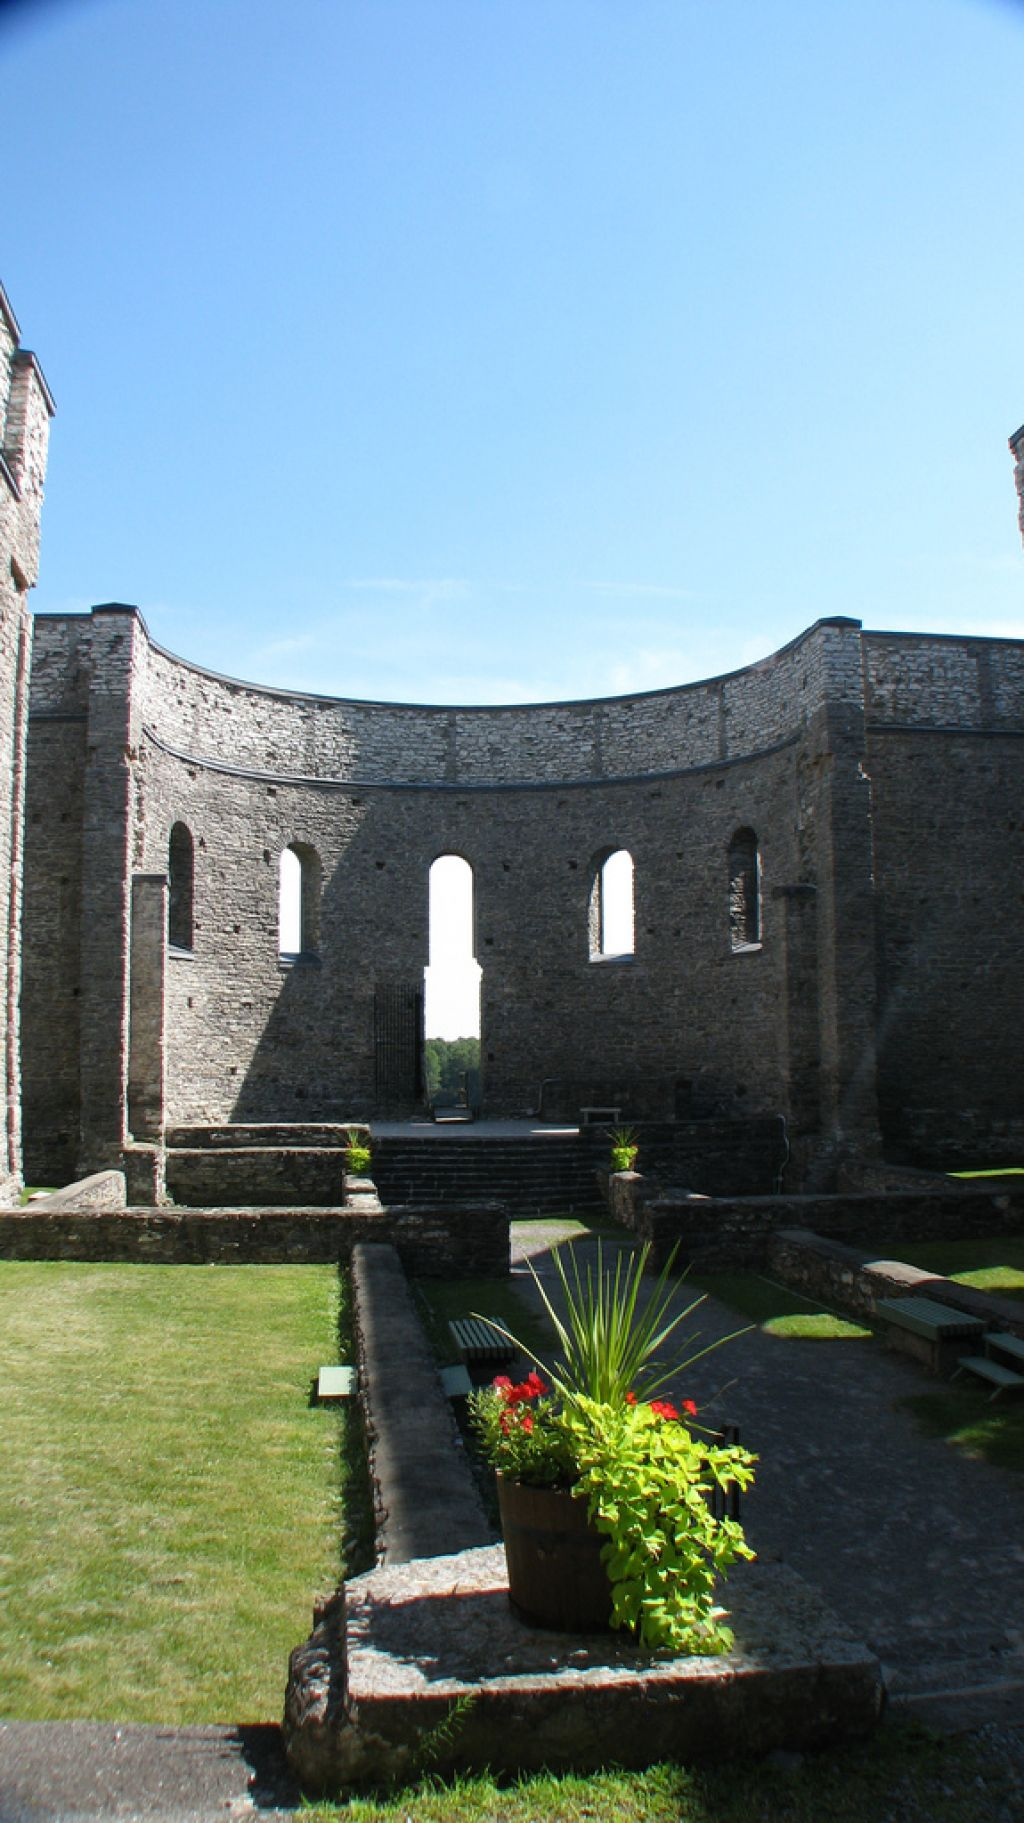 national historic site8 St. Raphaels Ruins in Ontario, Canada